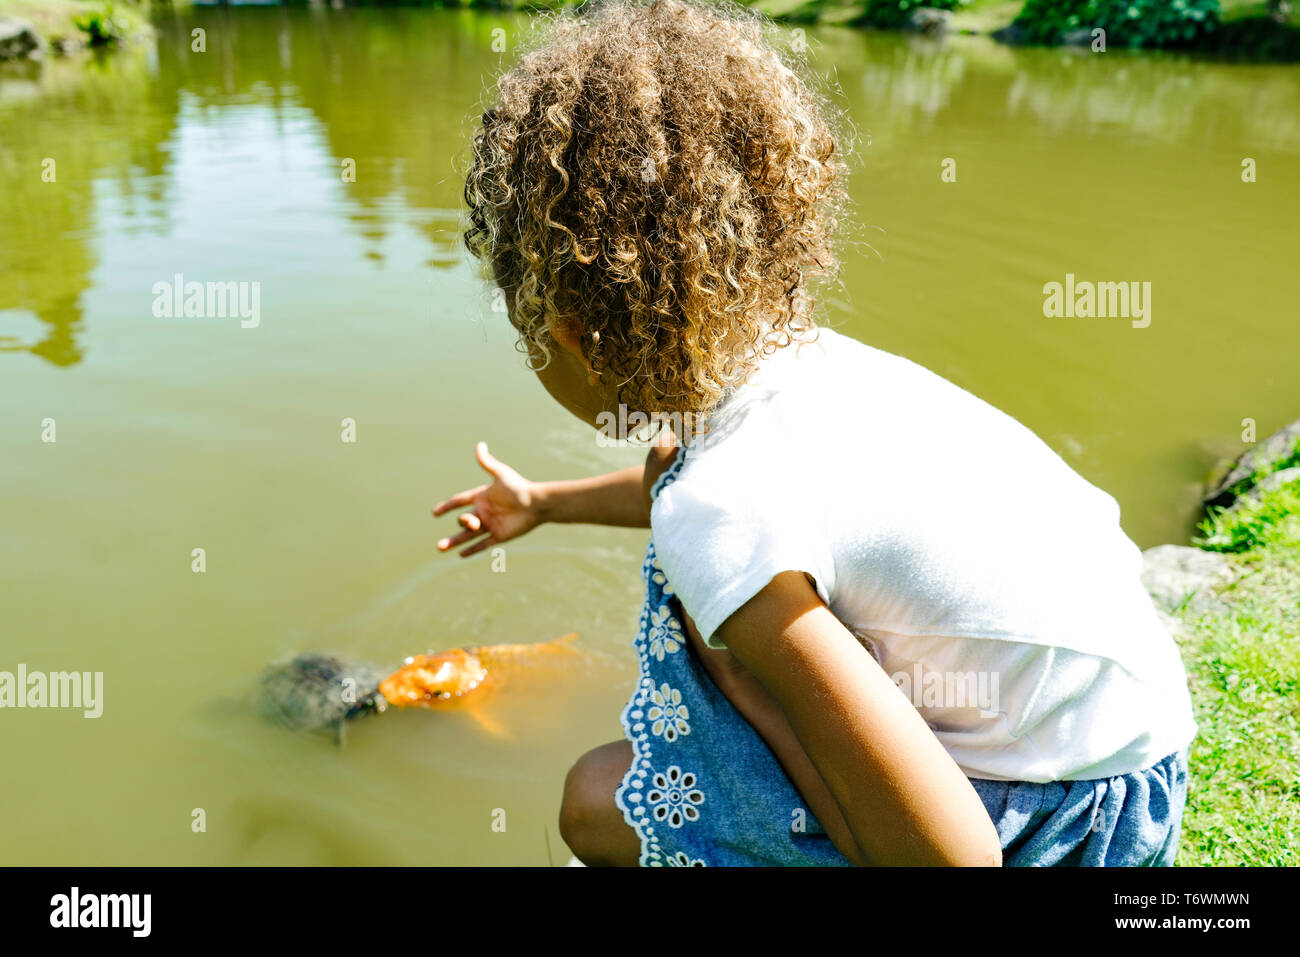 A young girl reaches out towards a turtle and a fish at a public park - Stock Image